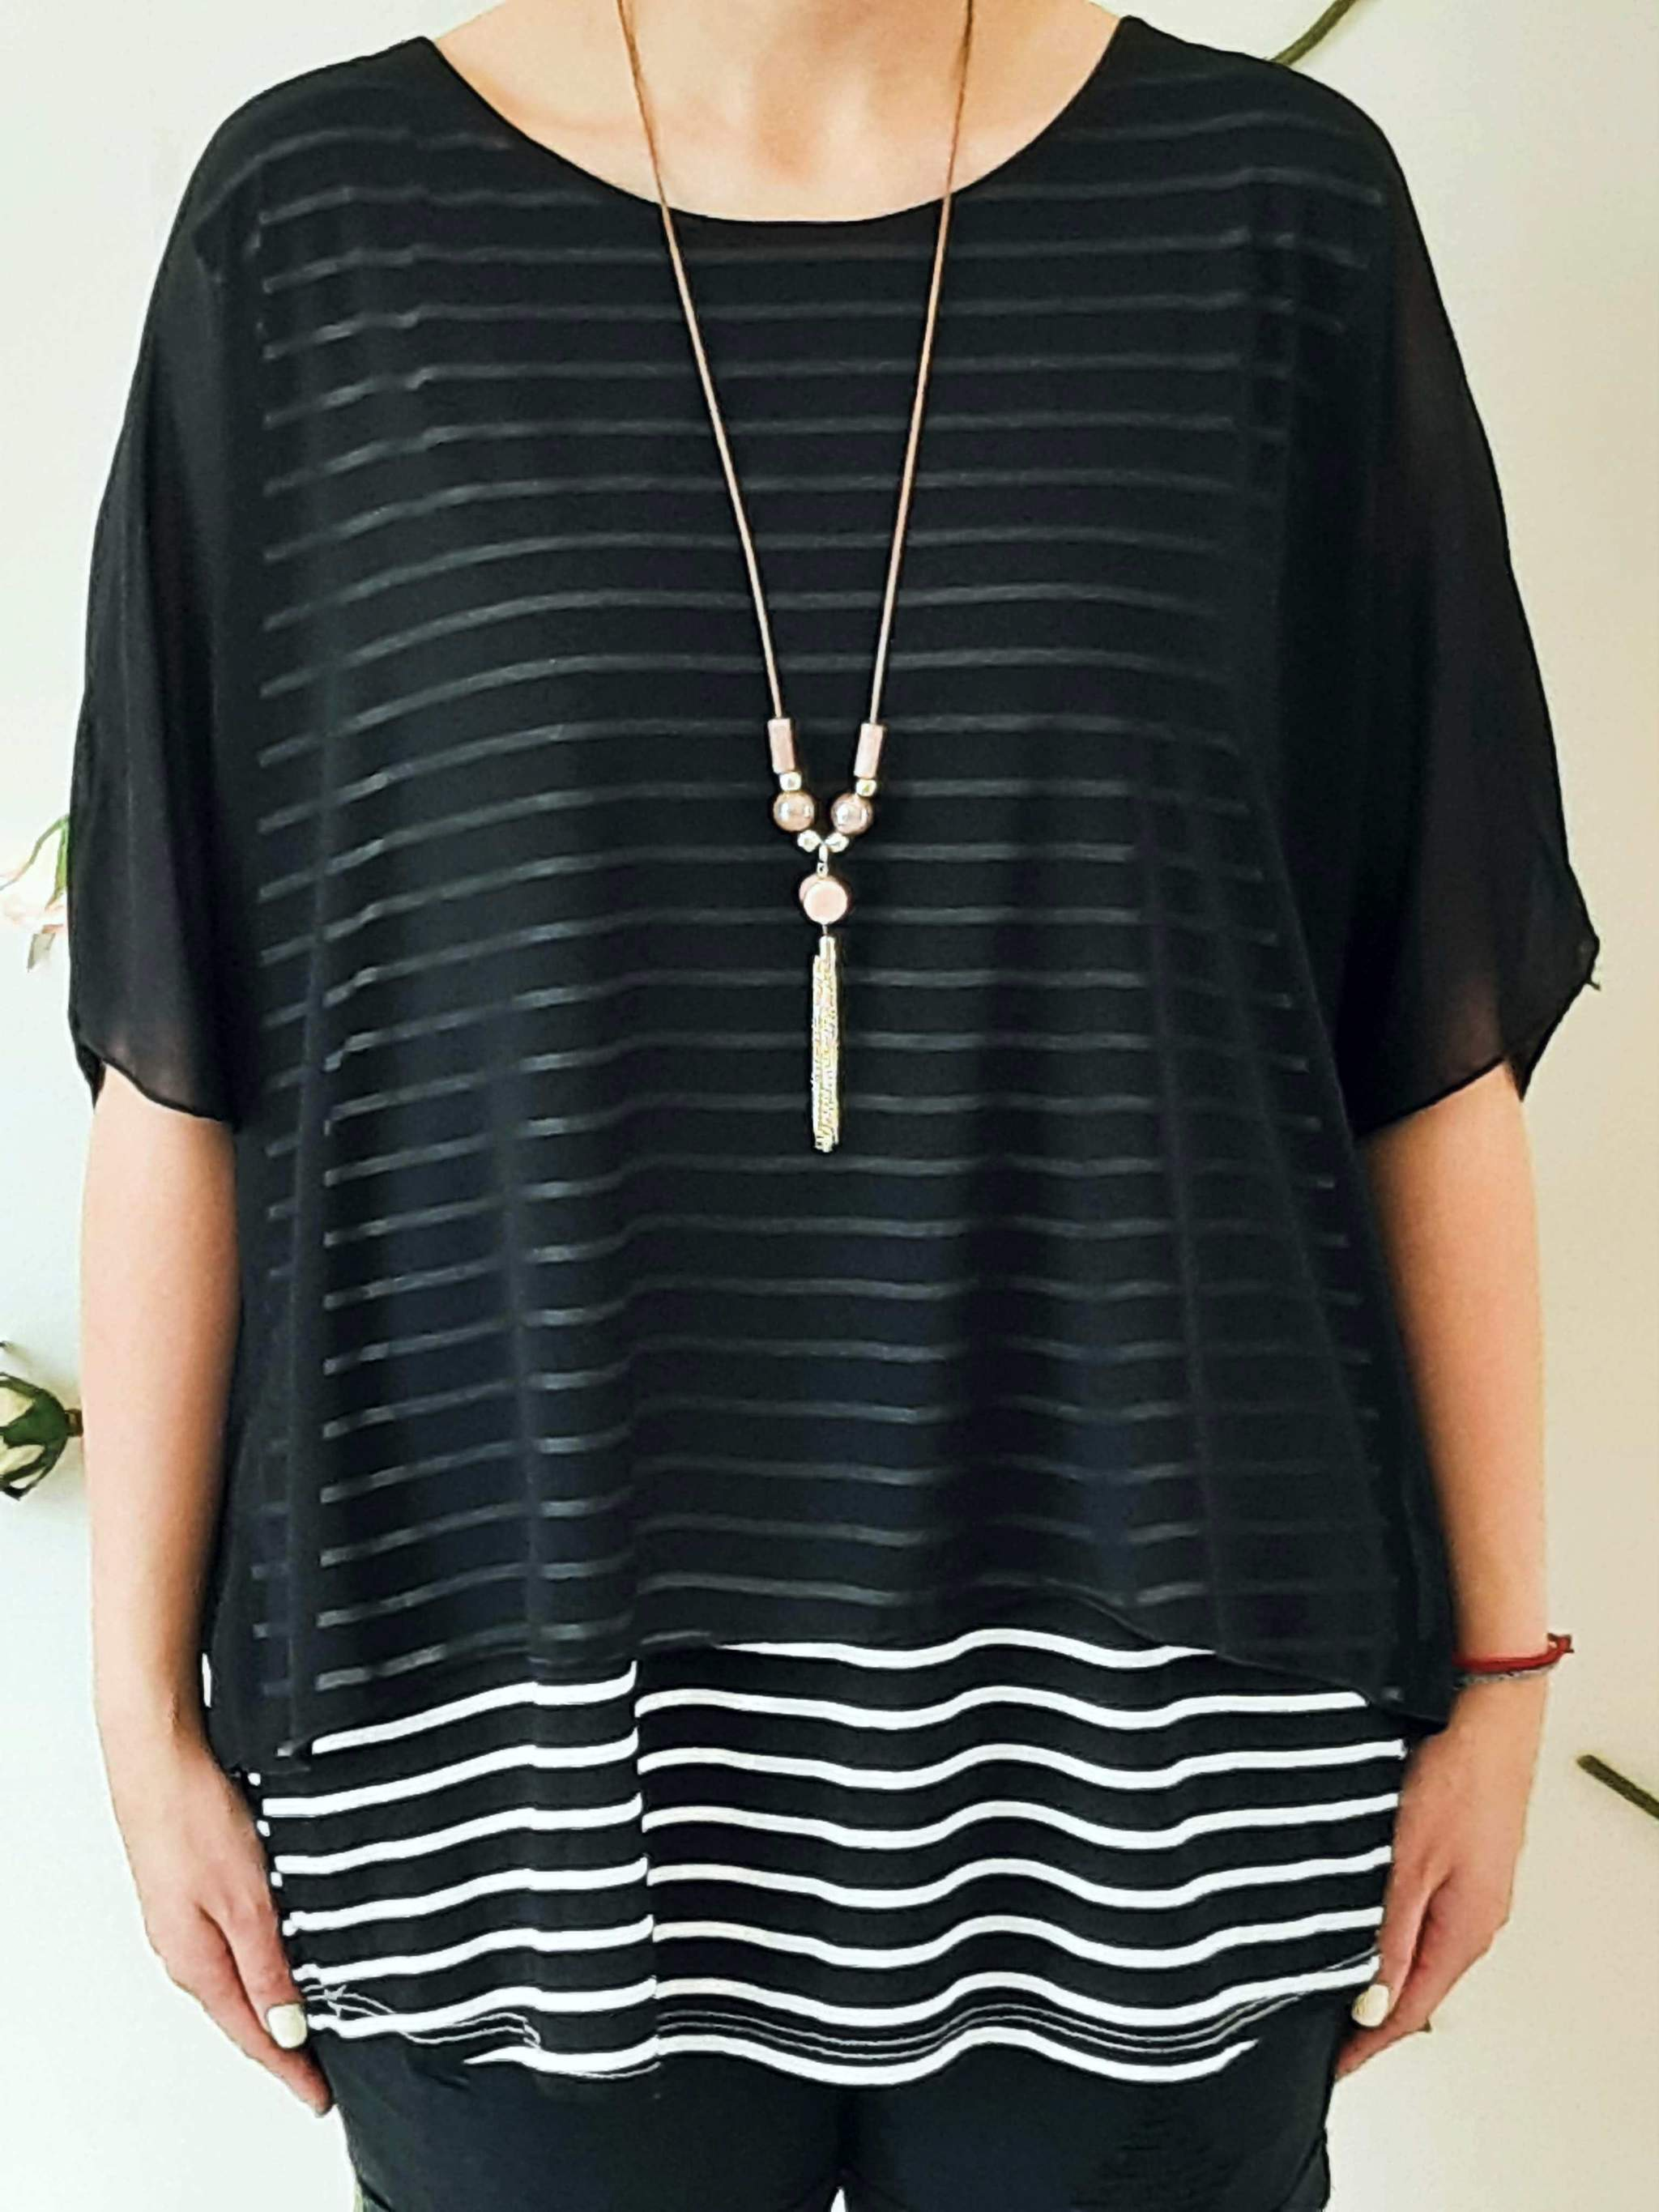 girl-wears-a-black-shirt-with-white-stripes-frontside